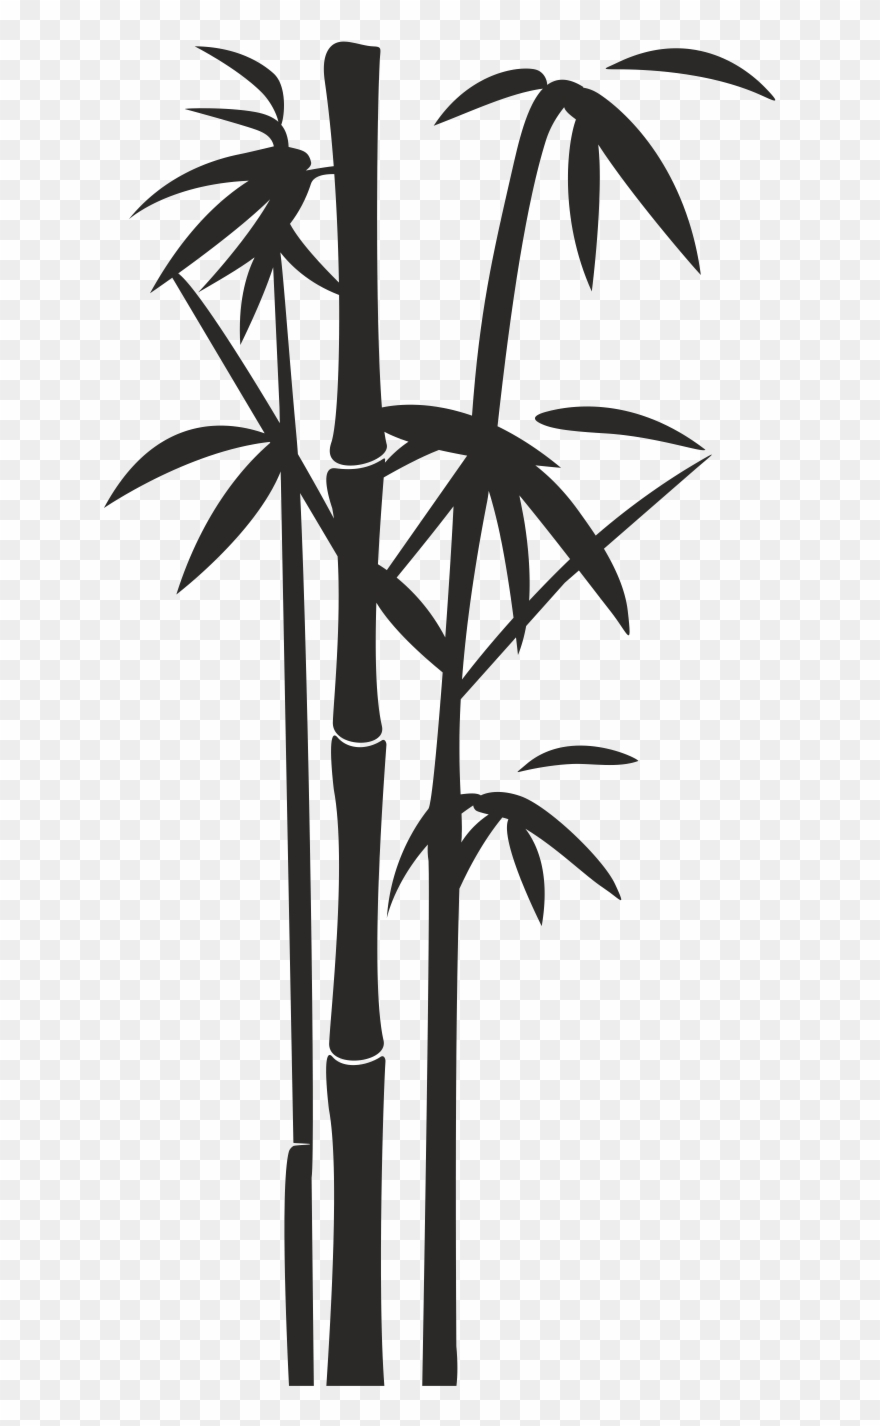 Png portable network graphics. Bamboo clipart black and white